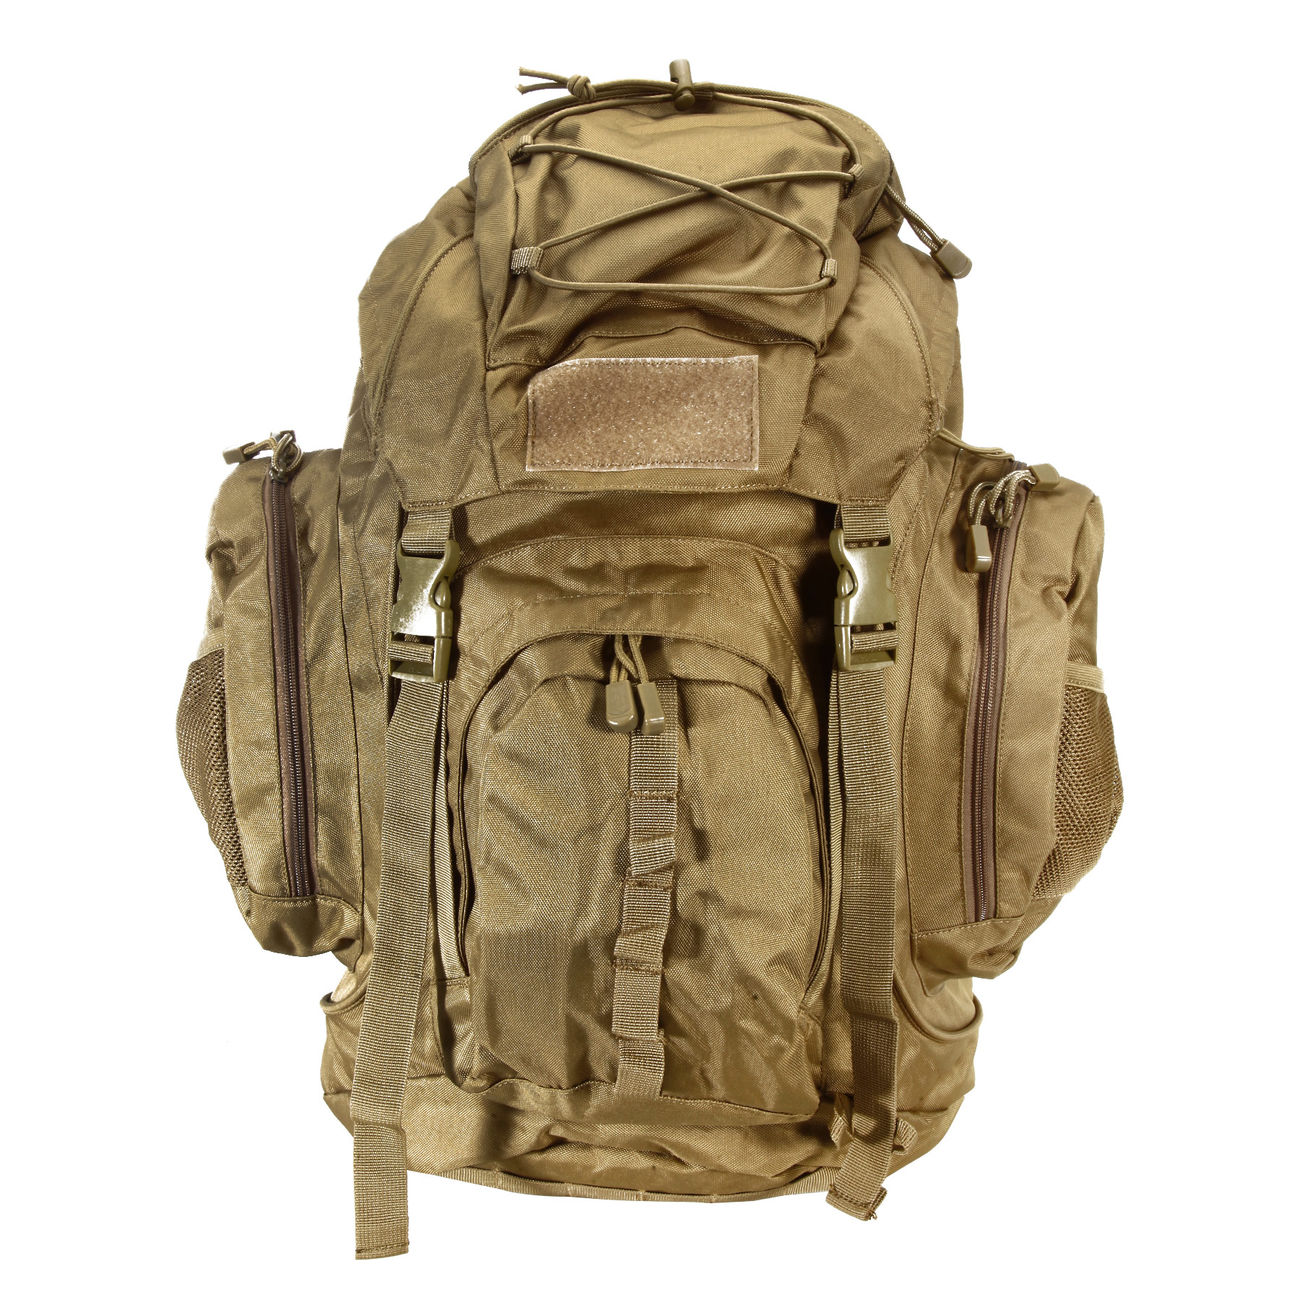 Defcon 5 Tactical Assault Rucksack Hydro 50L coyote tan 0